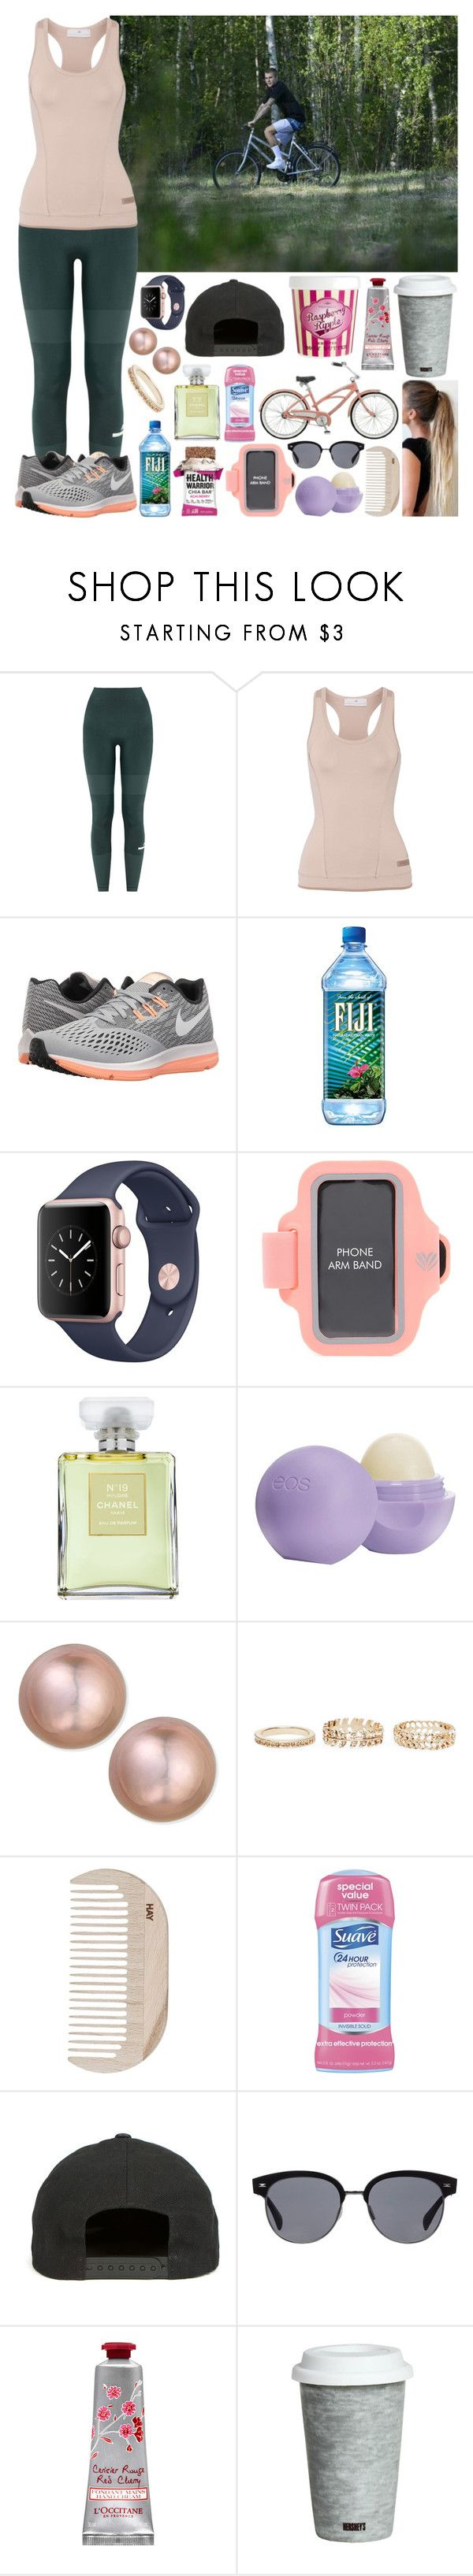 """""""Sin título #1347"""" by gisella-jb-pintos ❤ liked on Polyvore featuring adidas, NIKE, Forever 21, Chanel, Eos, Belpearl, Wet Seal, HAY, Rihanna For River Island and Oliver Peoples"""